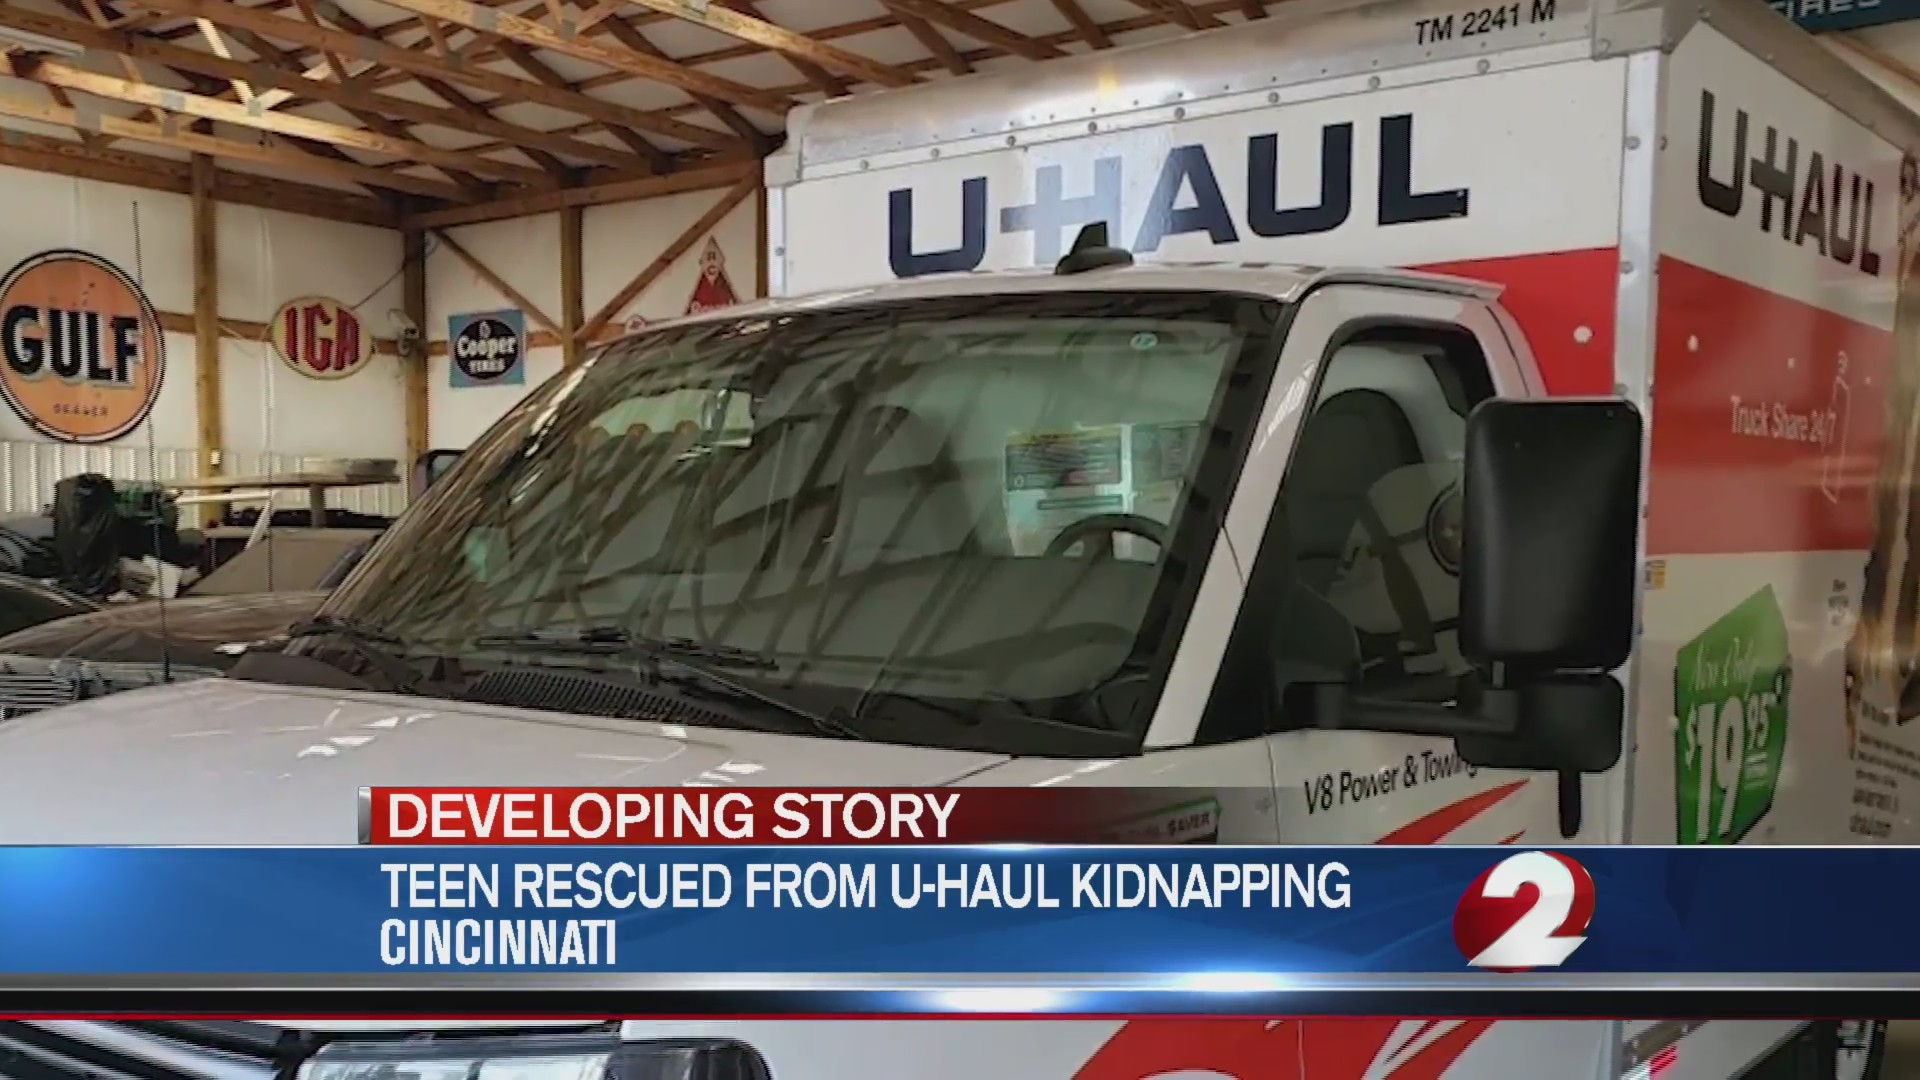 Missing teen found in U-haul, 3 charged with human trafficking